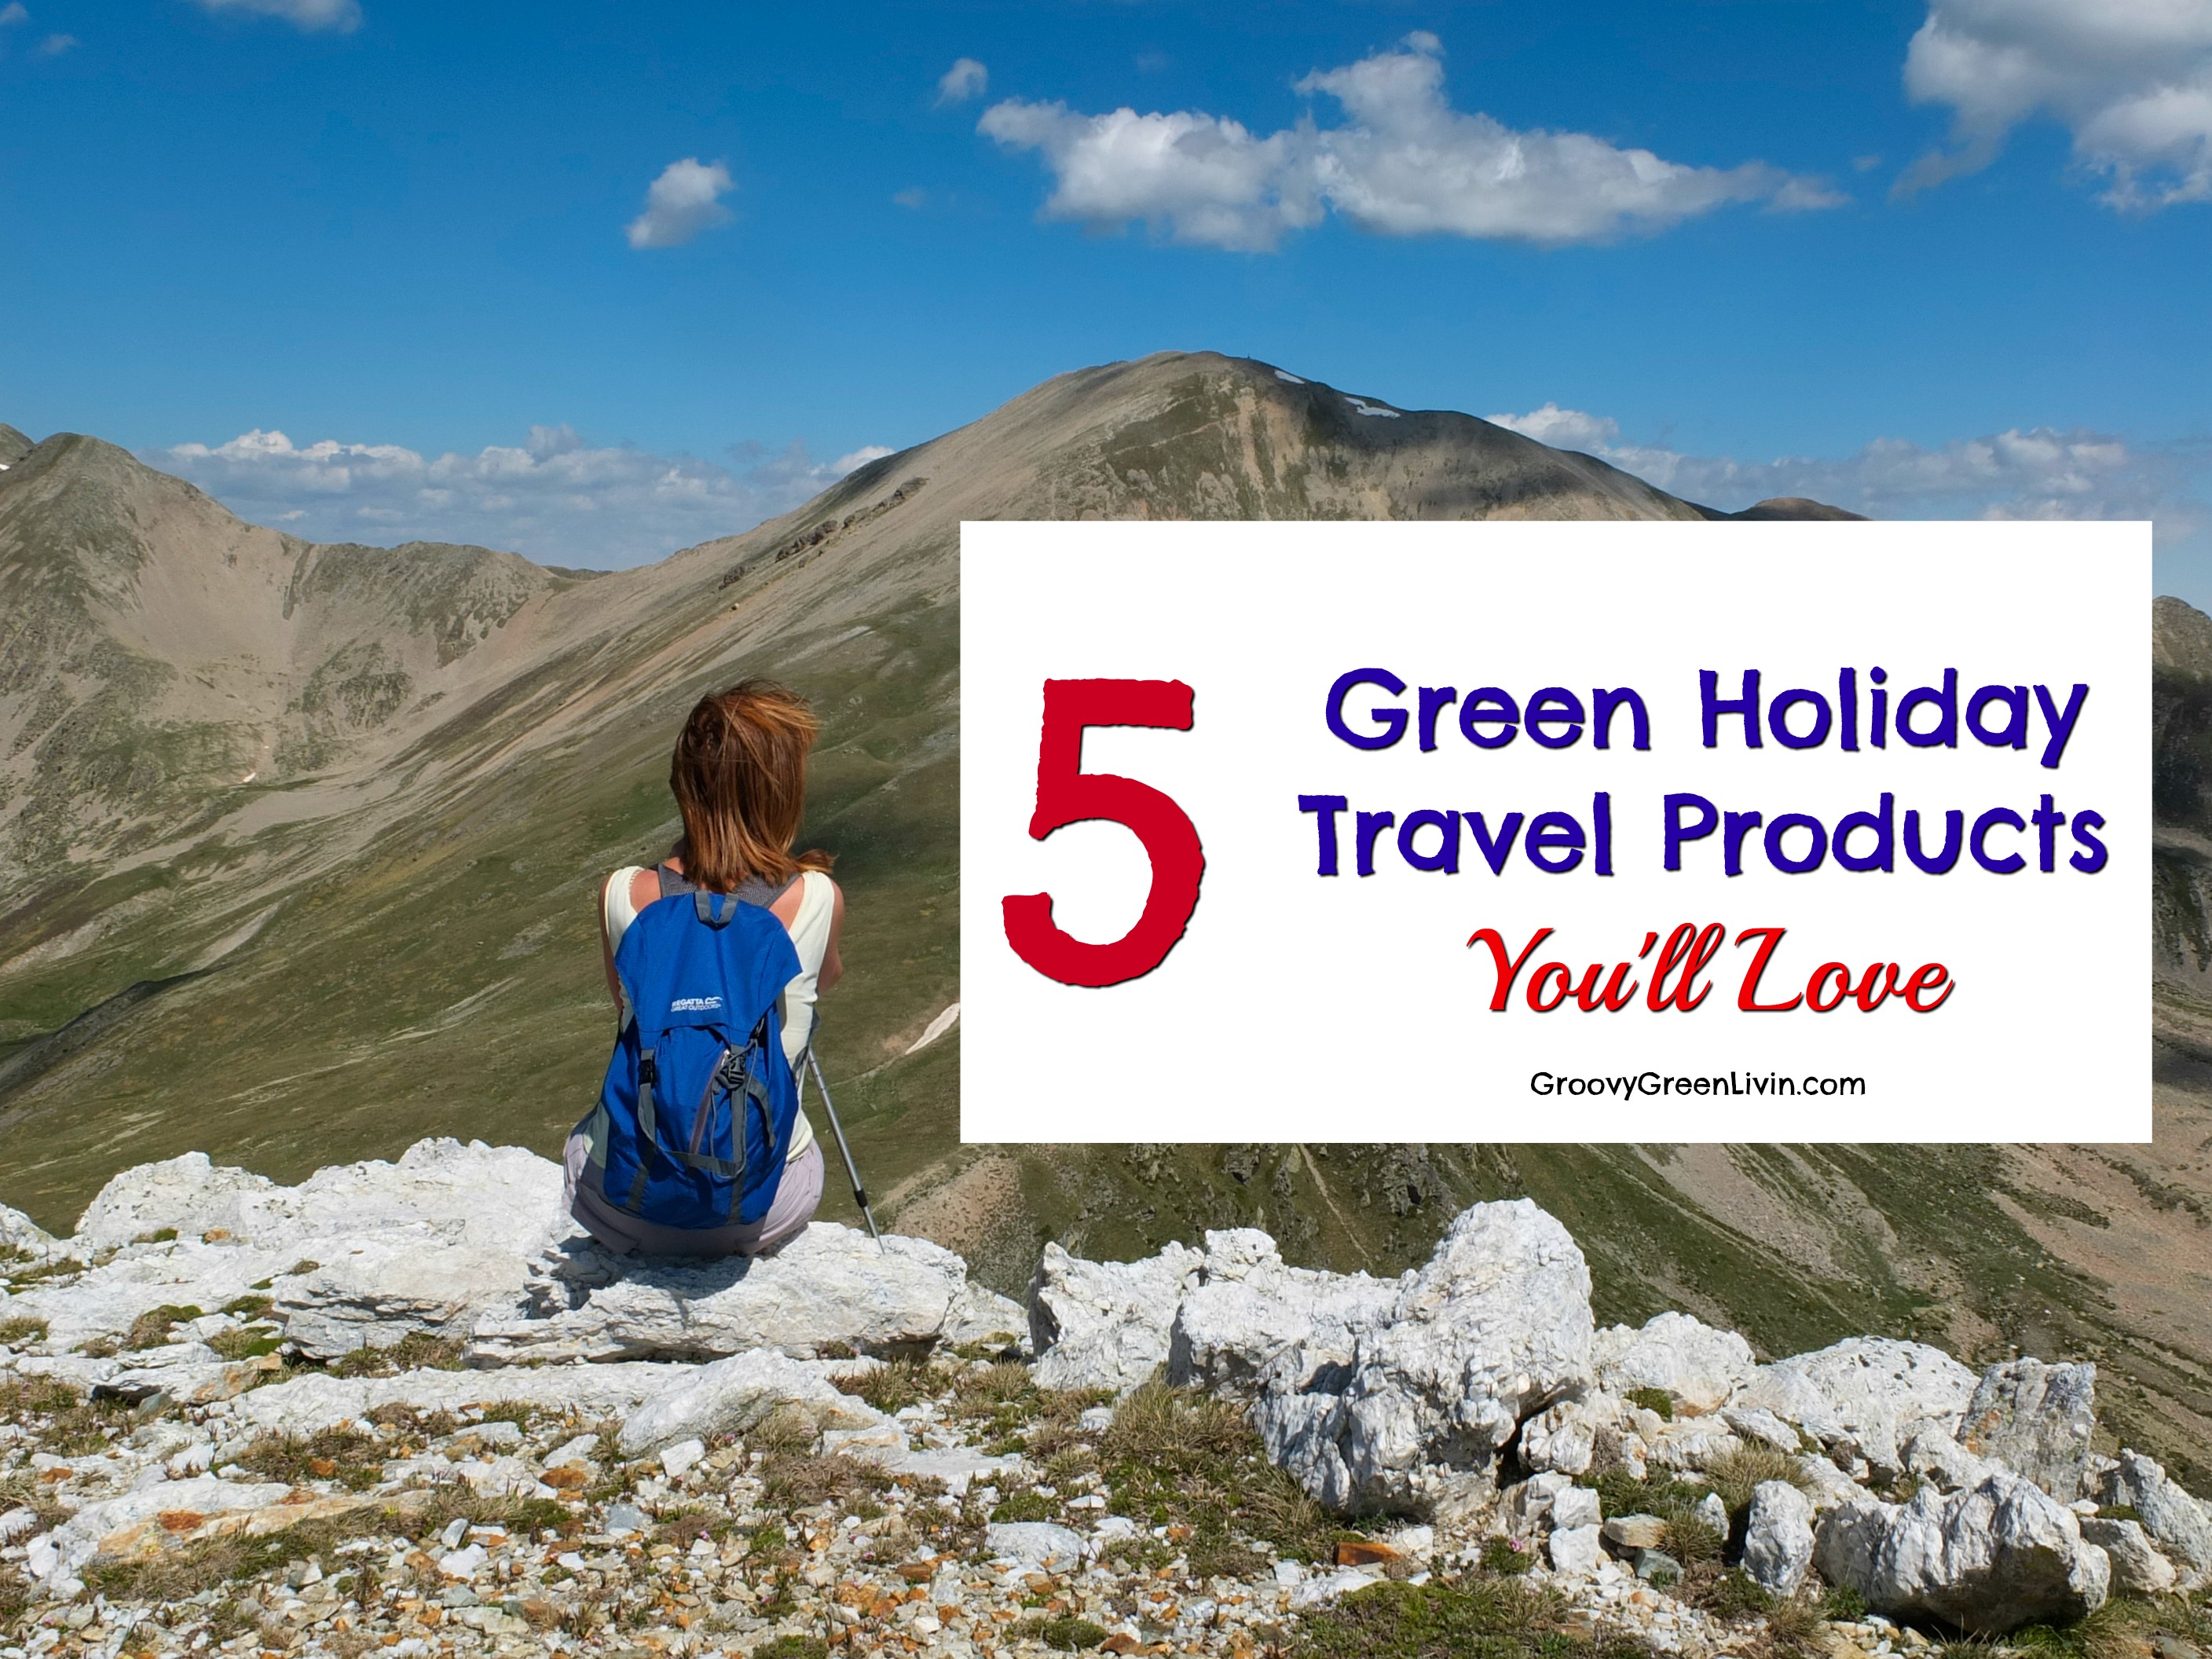 5 Green Holiday Travel Products You'll Love